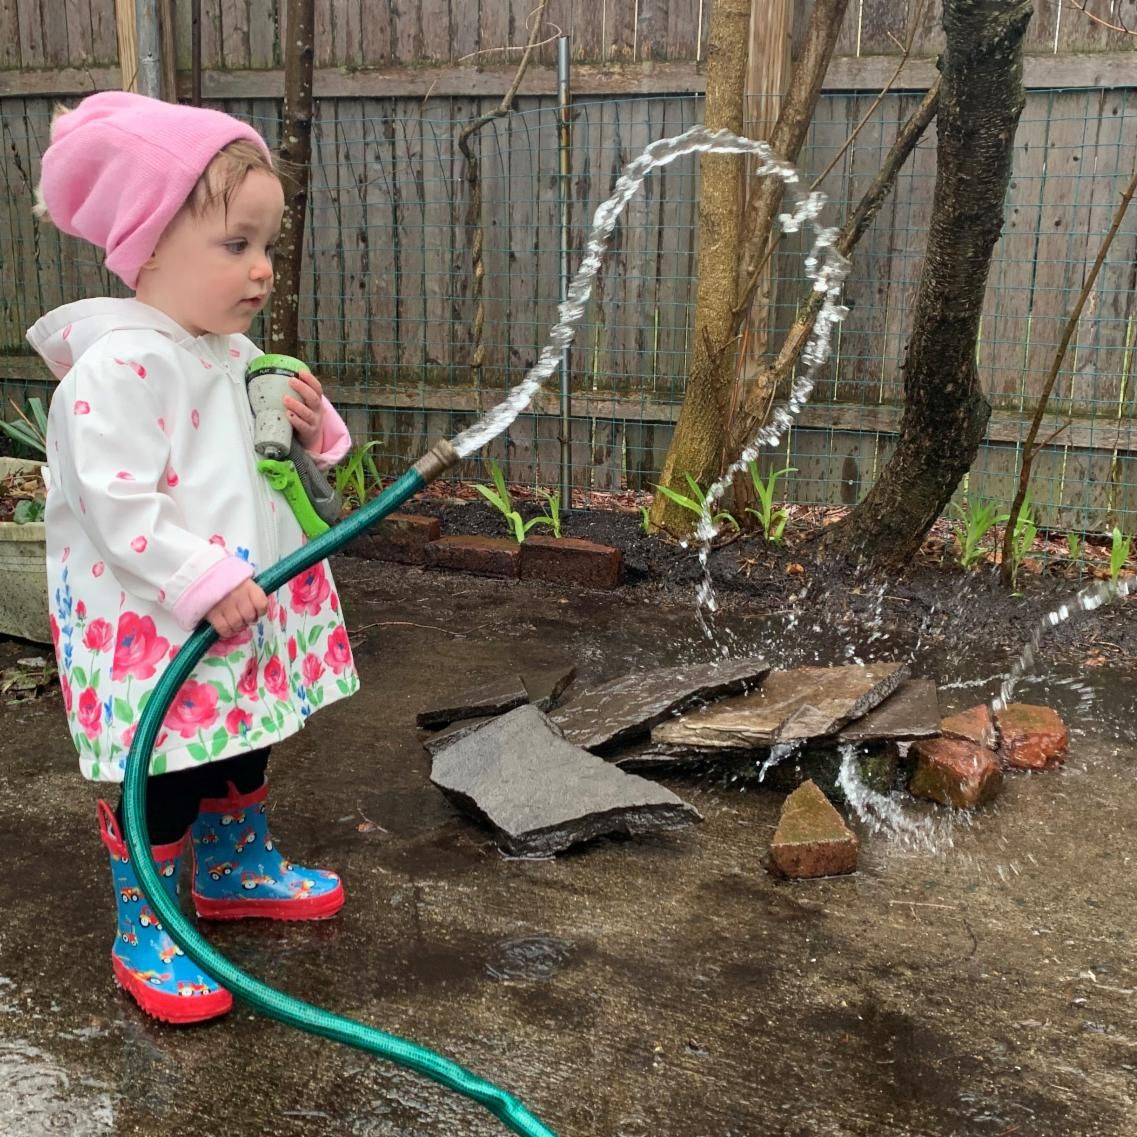 A girl in a raincoat, boots, and pink hat watering rocks with a hose.